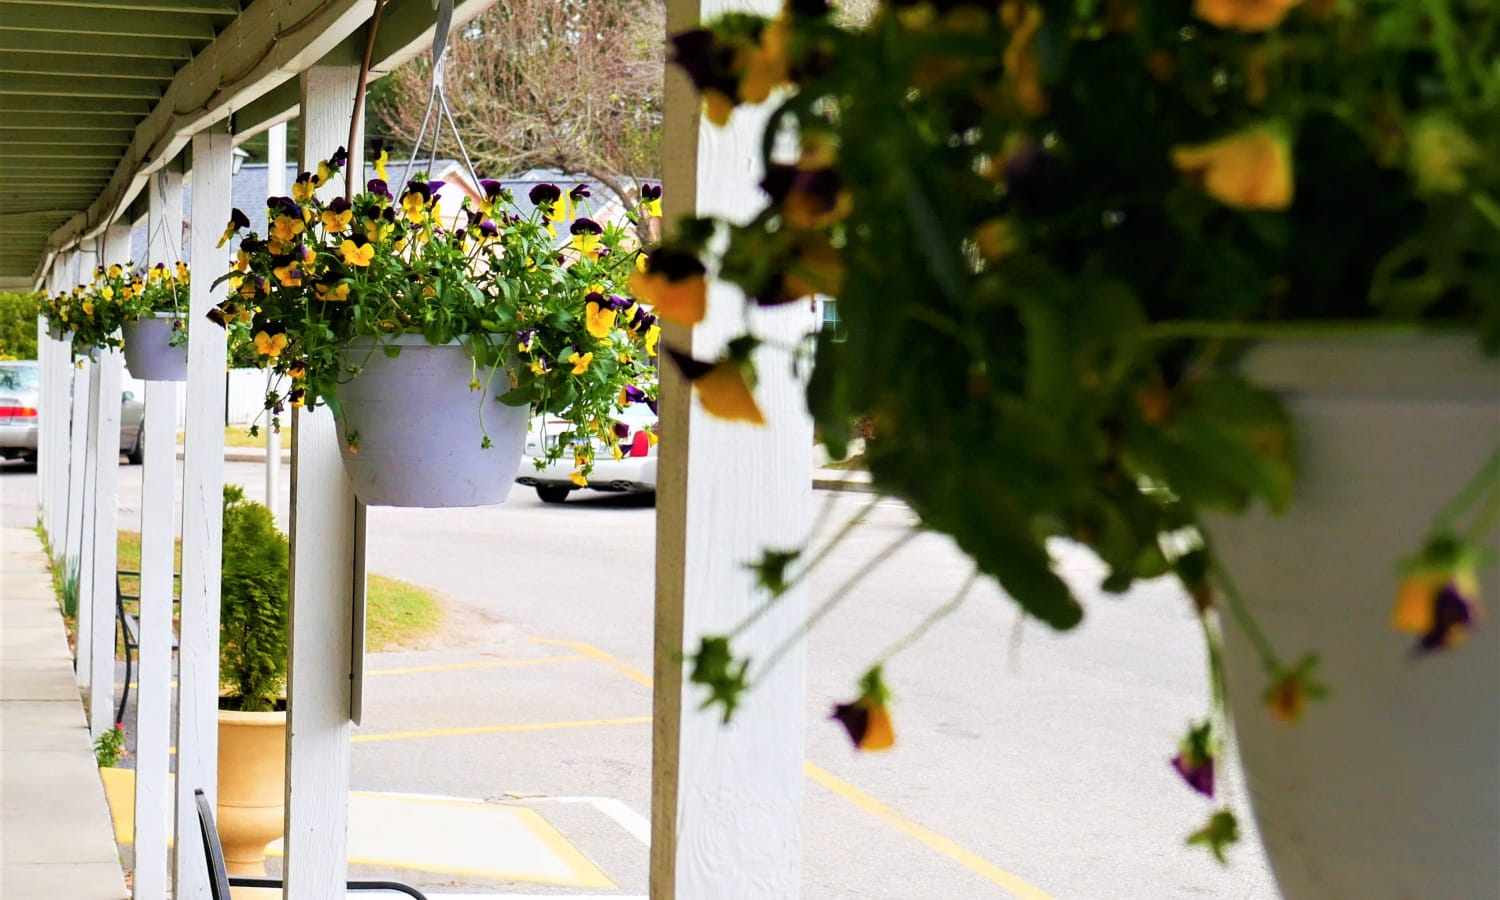 Hanging flower baskets outside at Sandpiper Senior Living in Mt. Pleasant, South Carolina